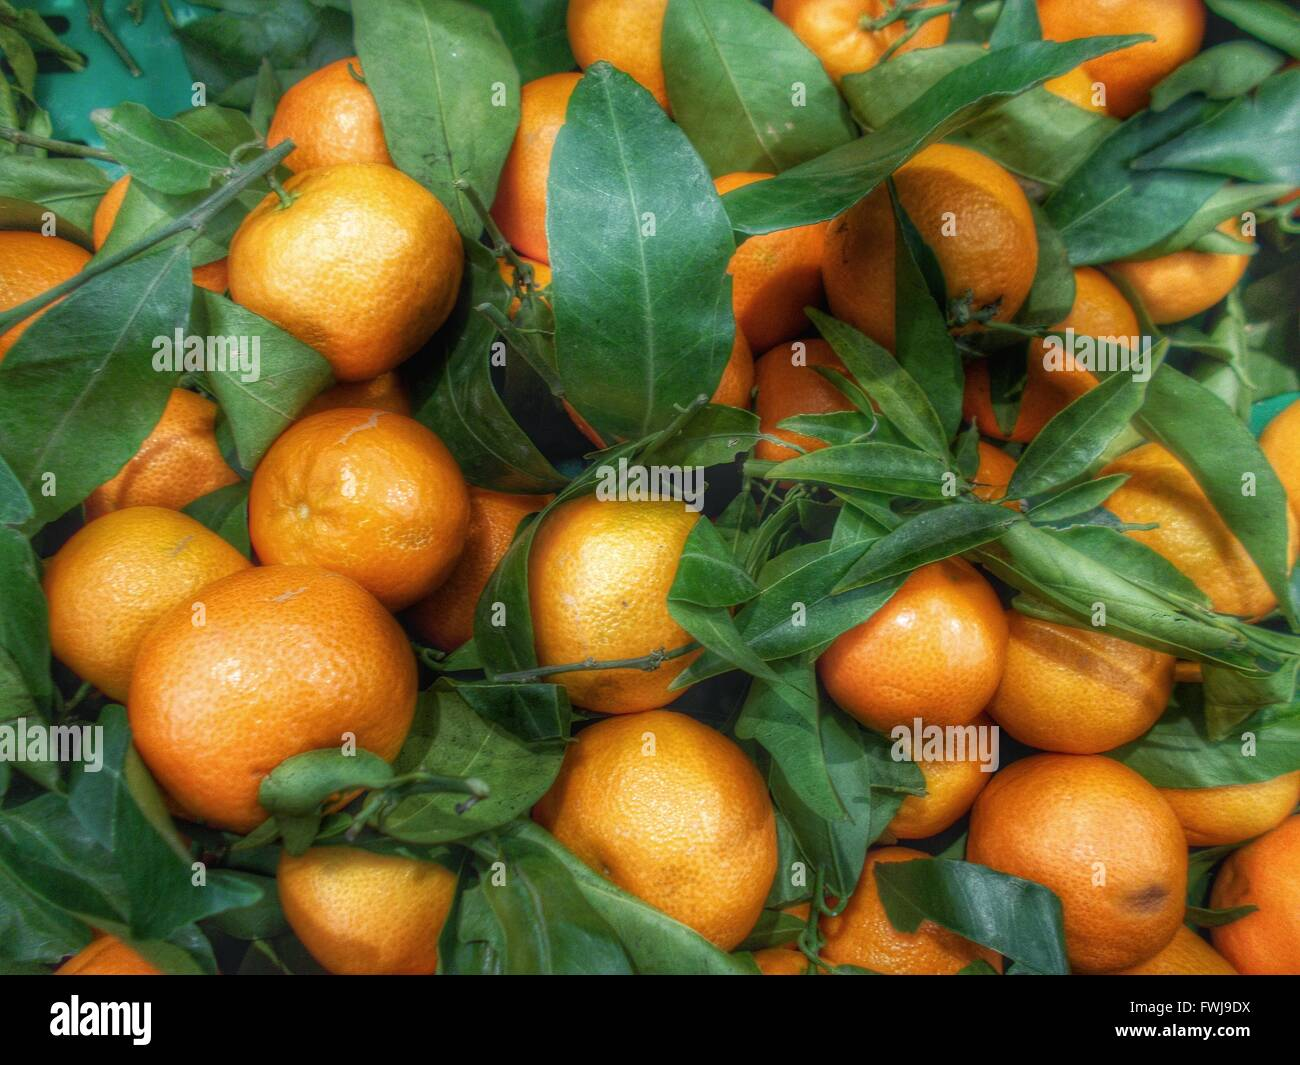 Full Frame Shot Of Oranges With Leaves For Sale At Market - Stock Image